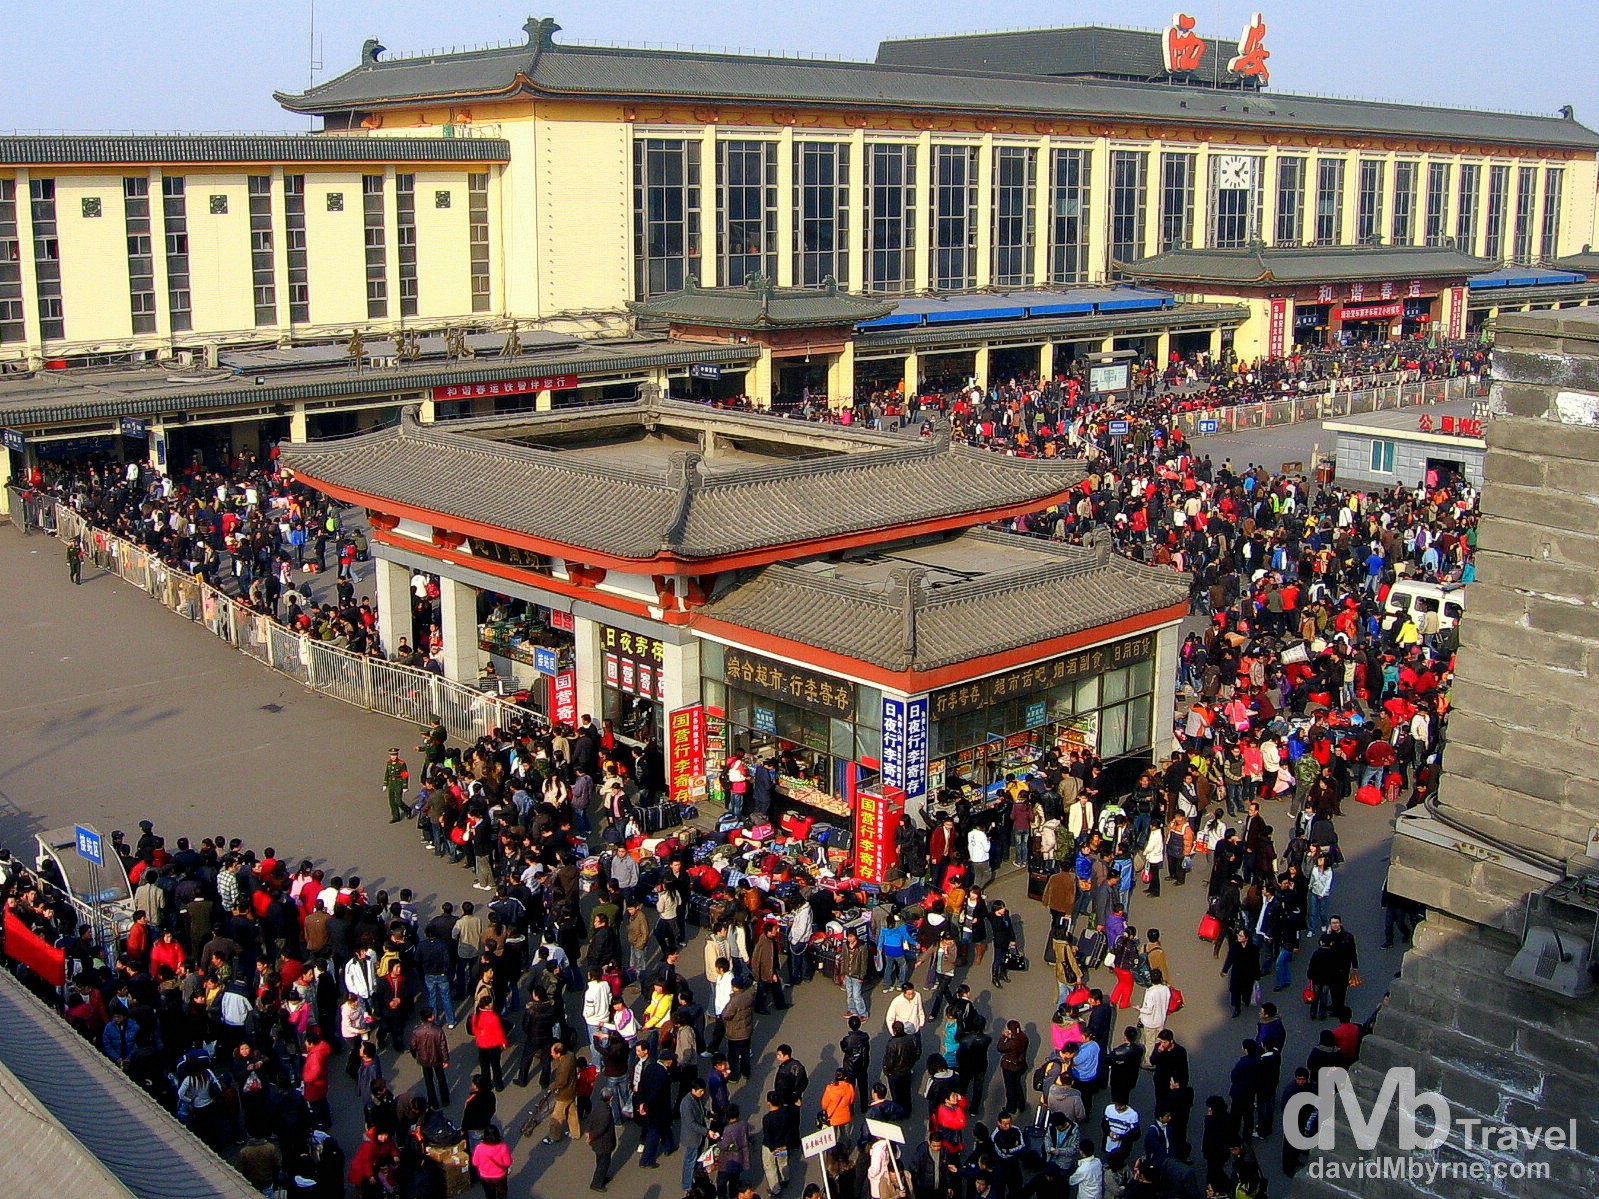 Crowds outside the main train station in Xi'an, Shaanxi Province, China. February 22nd, 2008.